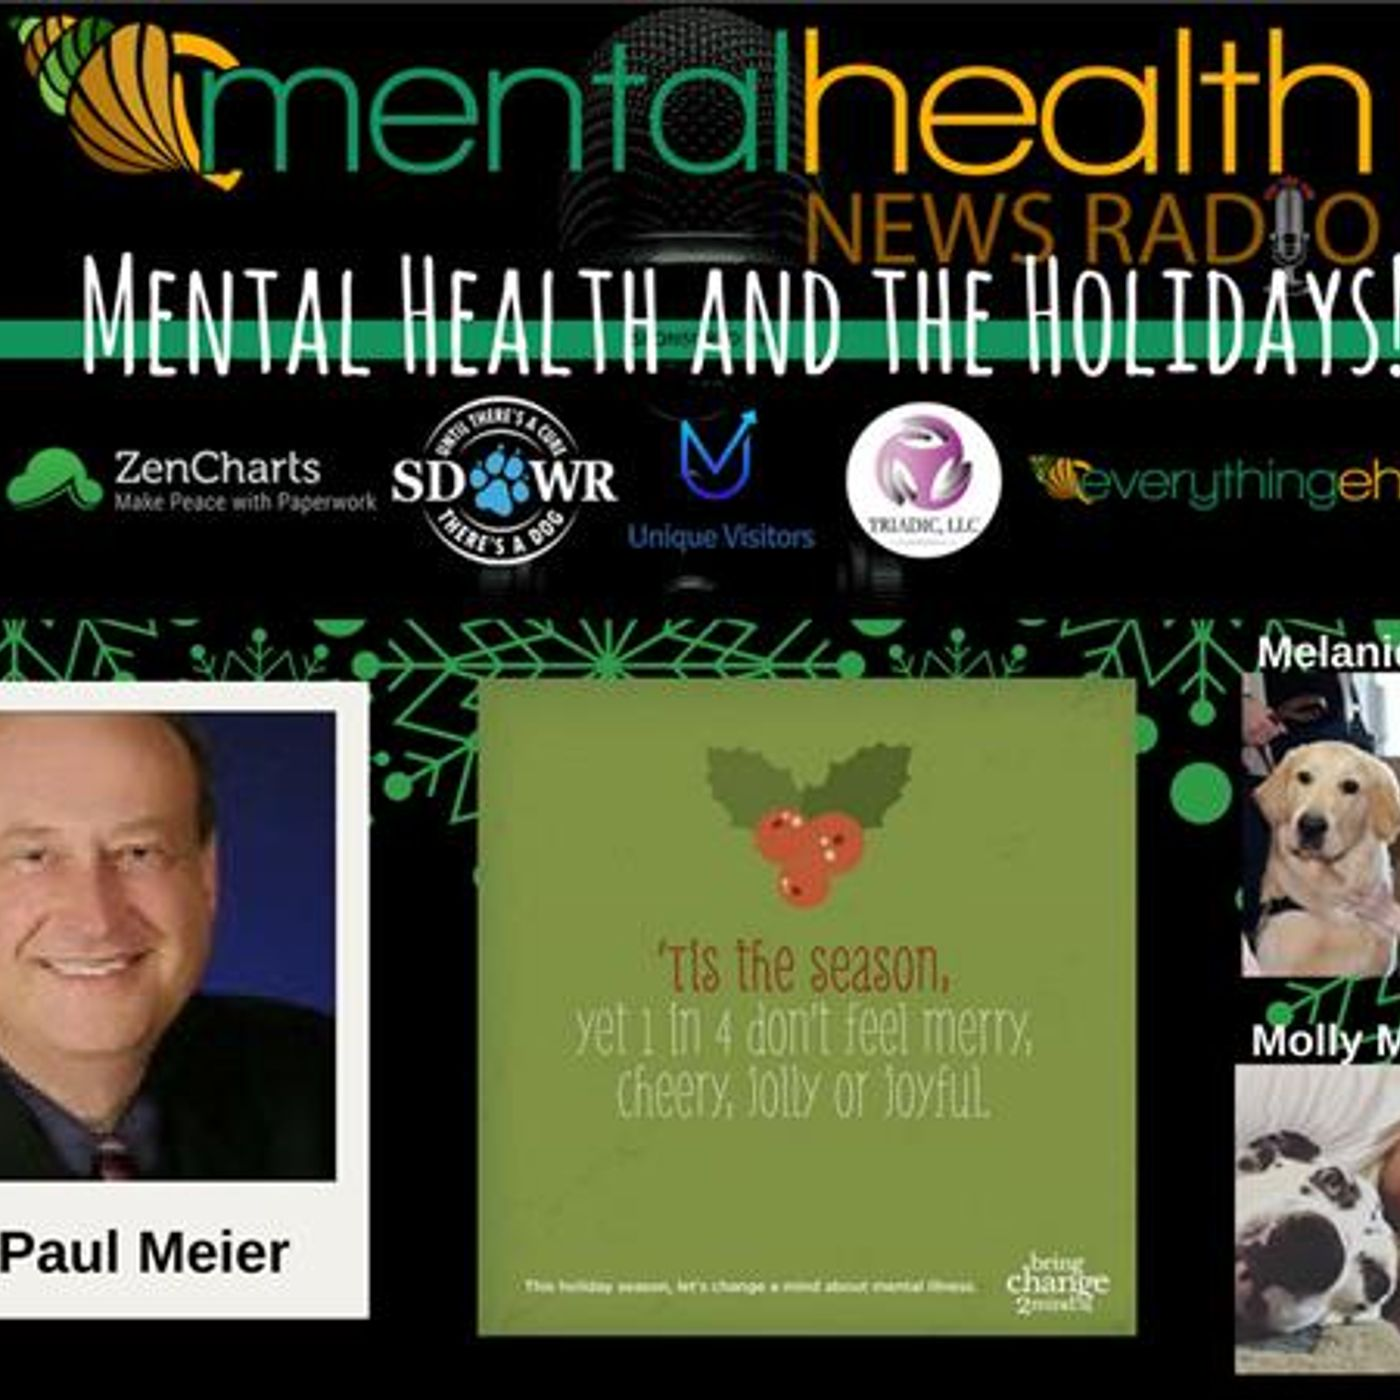 Mental Health News Radio - Round Table Discussions with Dr. Paul Meier: Mental Health and the Holidays